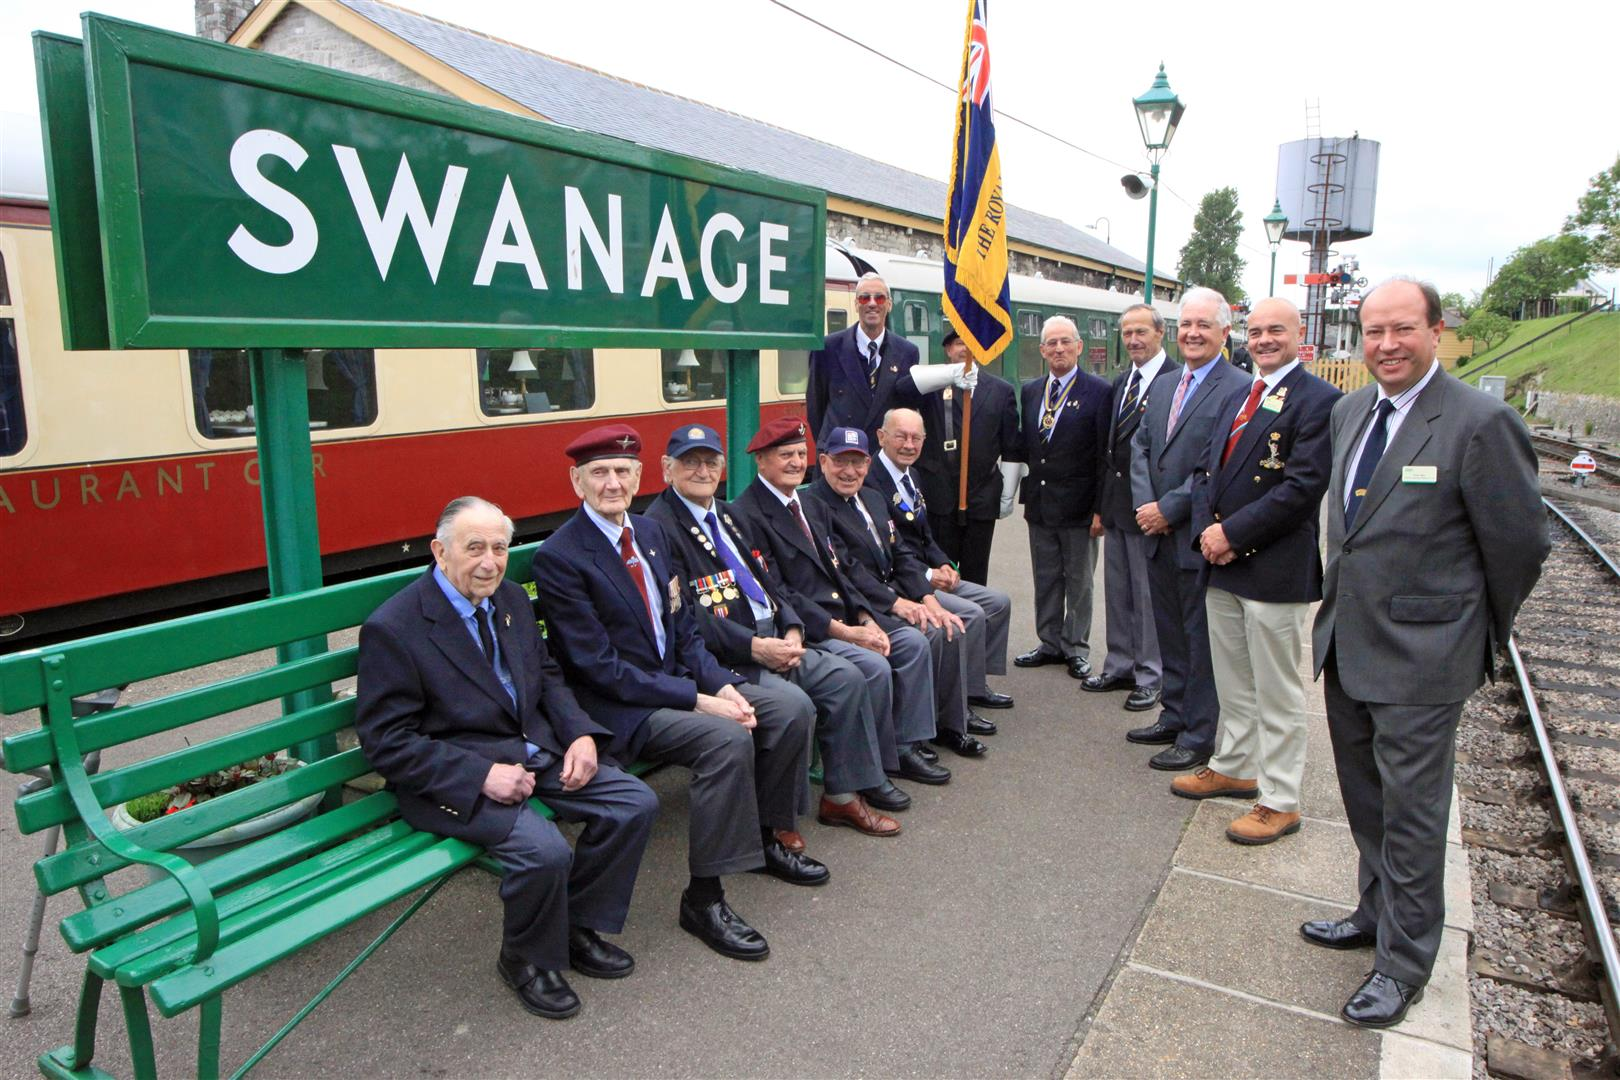 Veterans visit Swanage Railway to commemorate the D-Day anniversary